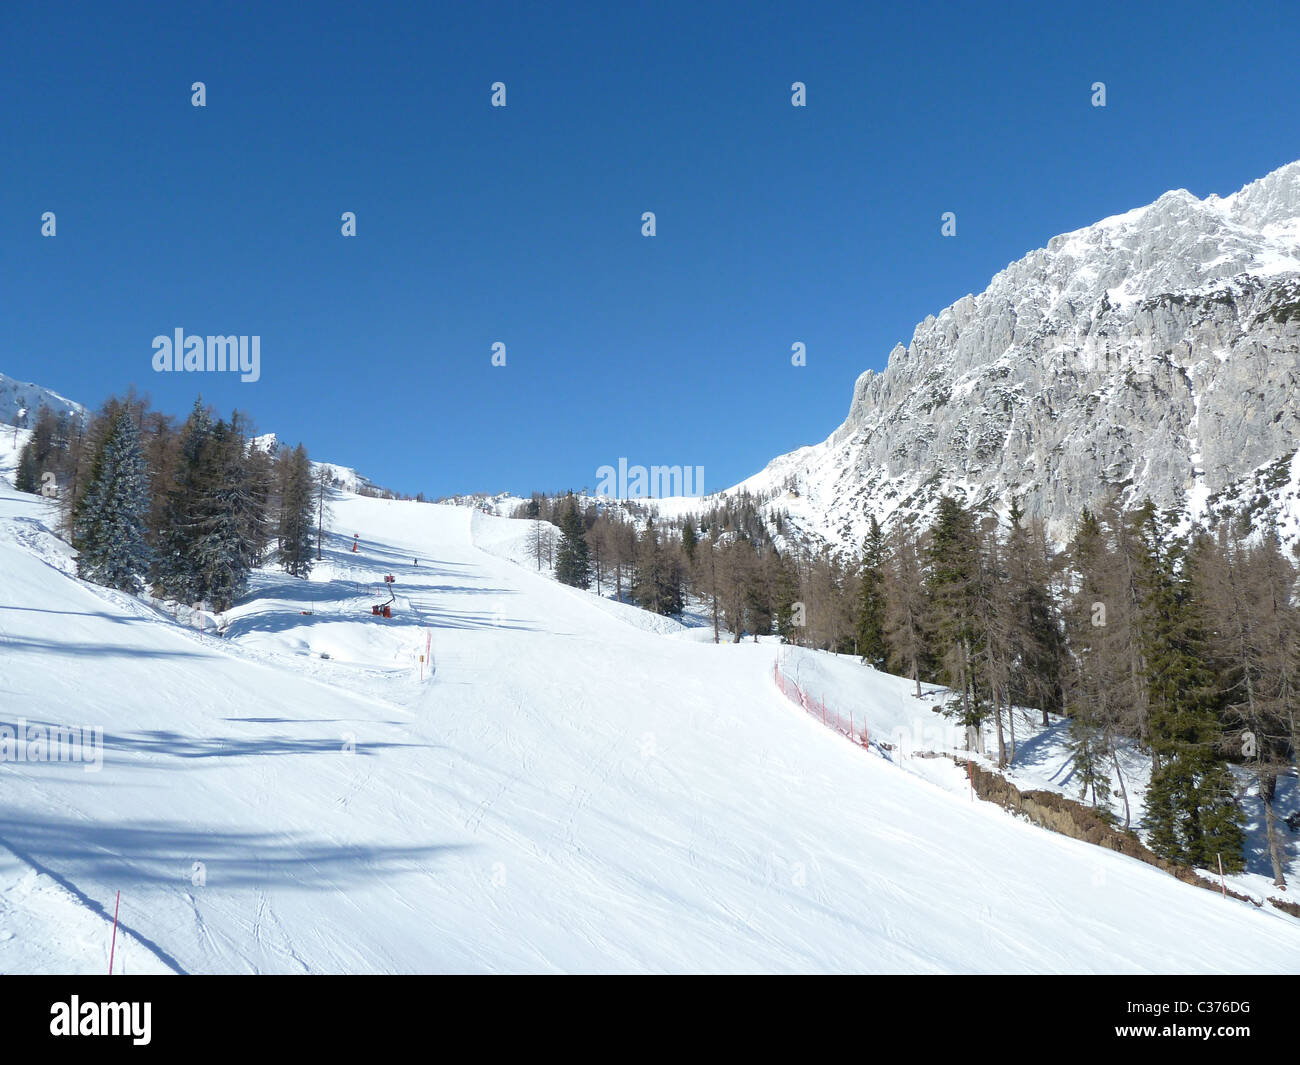 A fresh primed ski slope with a cloudless blue sky. - Stock Image